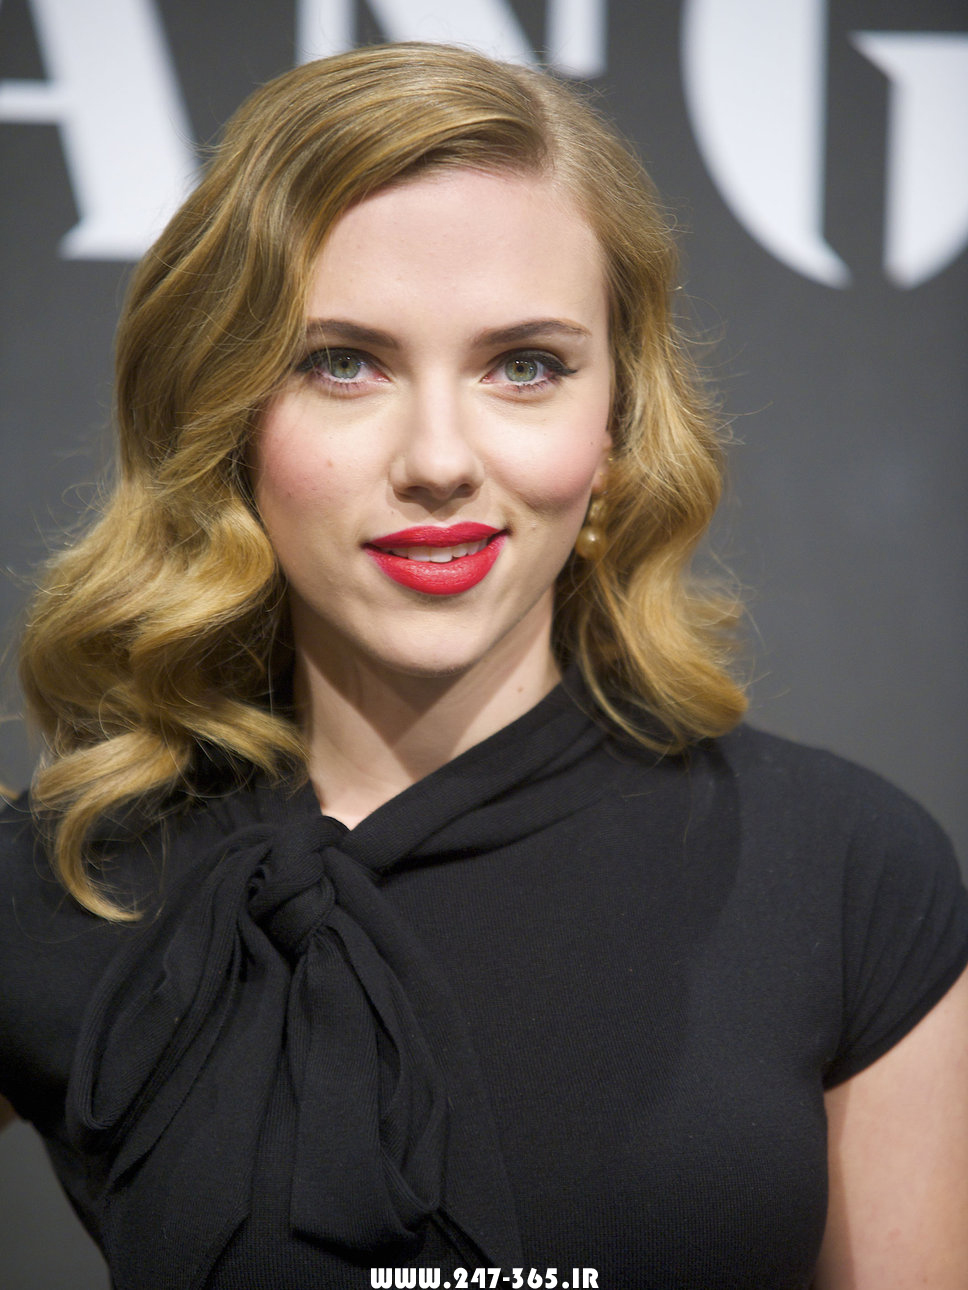 http://dl.247-365.ir/pic/honarmandan/scarlett_johansson_hacked_photos/Scarlett_Johansson_Hacked_Photos_01.jpg